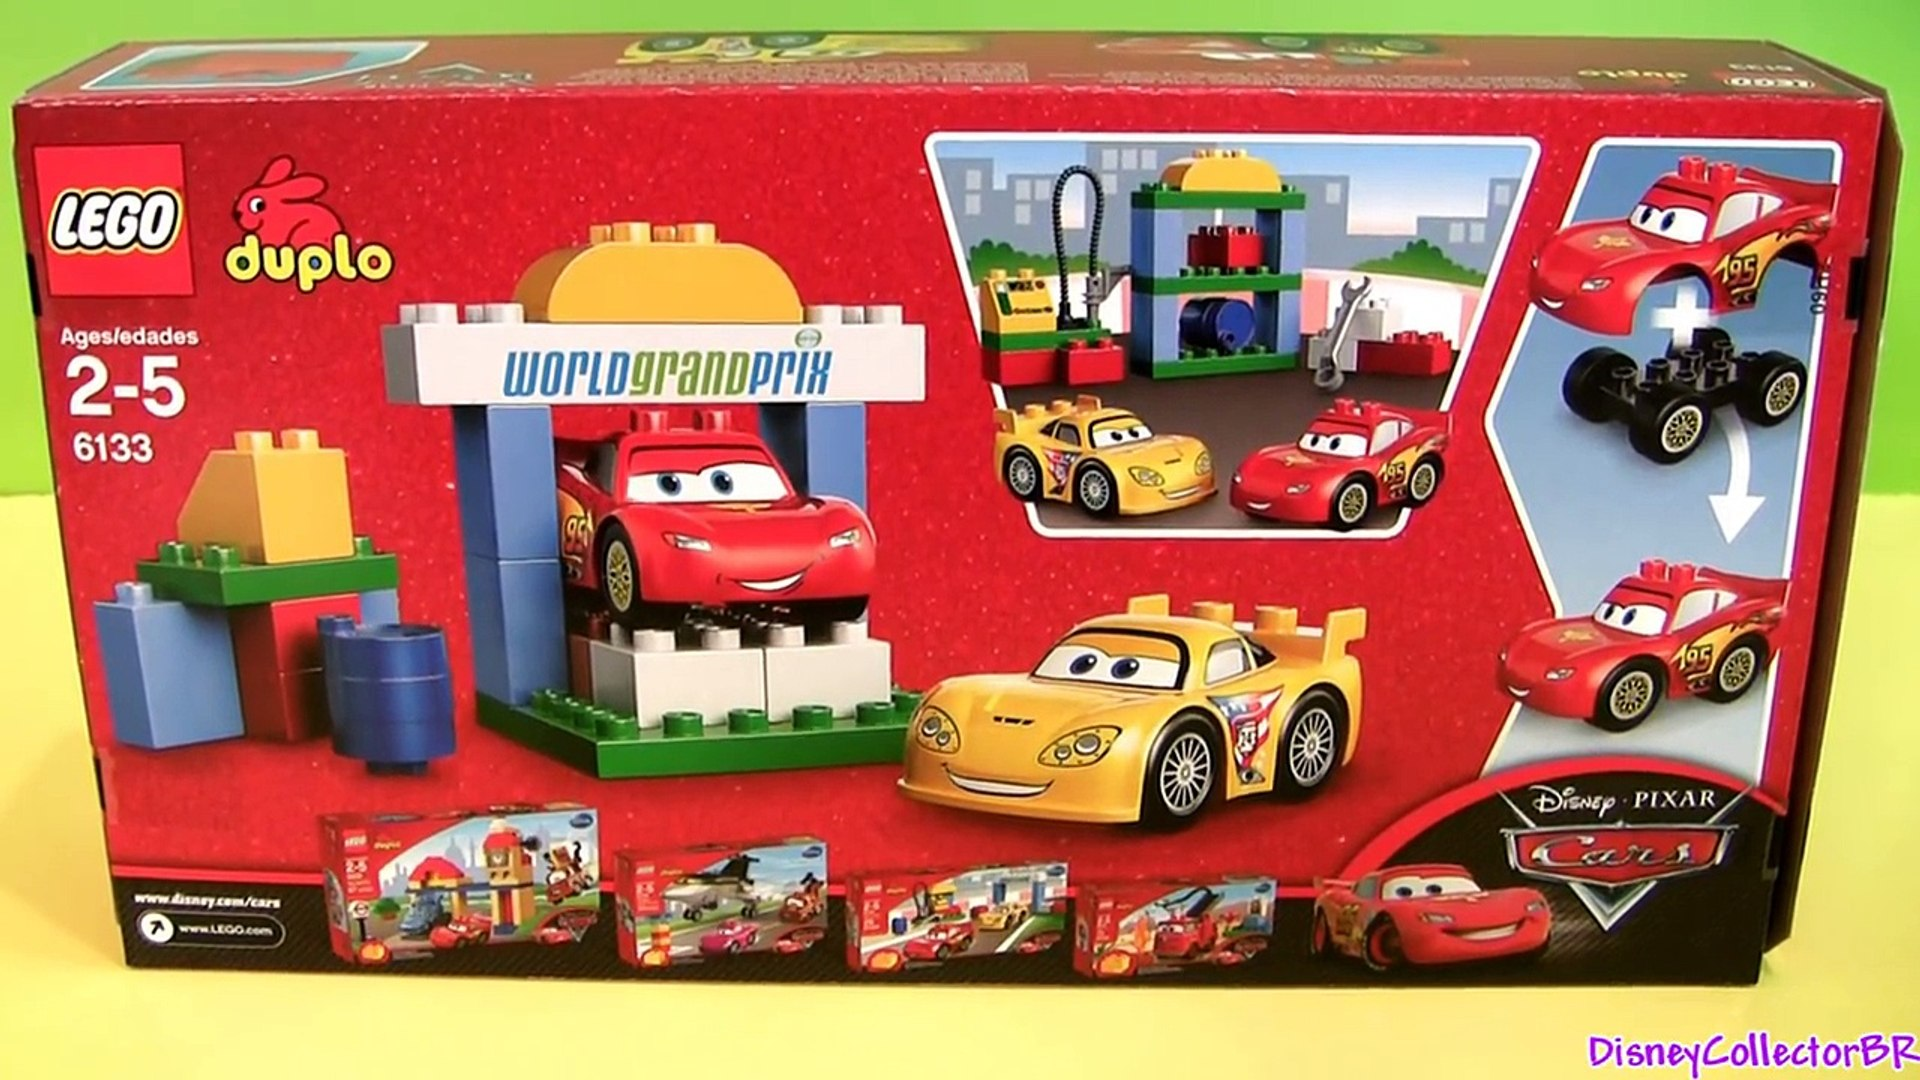 Cars 2 Lego Duplo Race Day Lightning Mcqueen 6133 Jeff Gorvette Disney Builable Toys Pixar Review Dailymotion Video